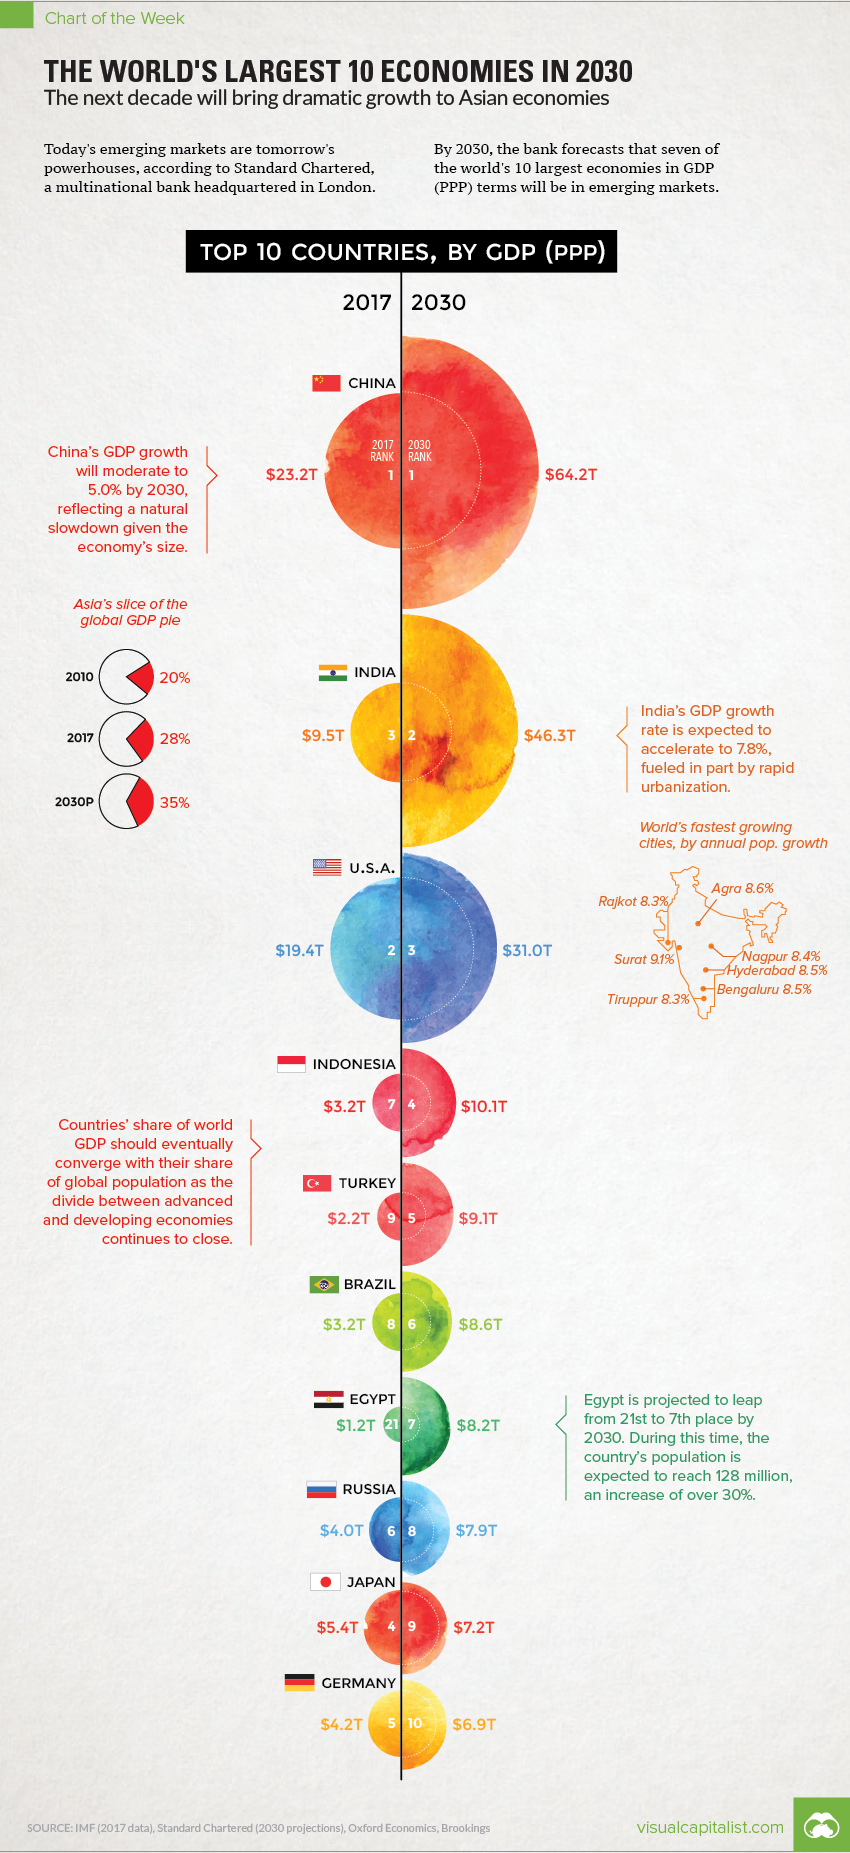 Chart The Worlds Largest 10 Economies In 2030 Worlds Largest Economies In 2030 The Chart Of The Week Is A Wee Economy Infographic Finance Blog Infographic